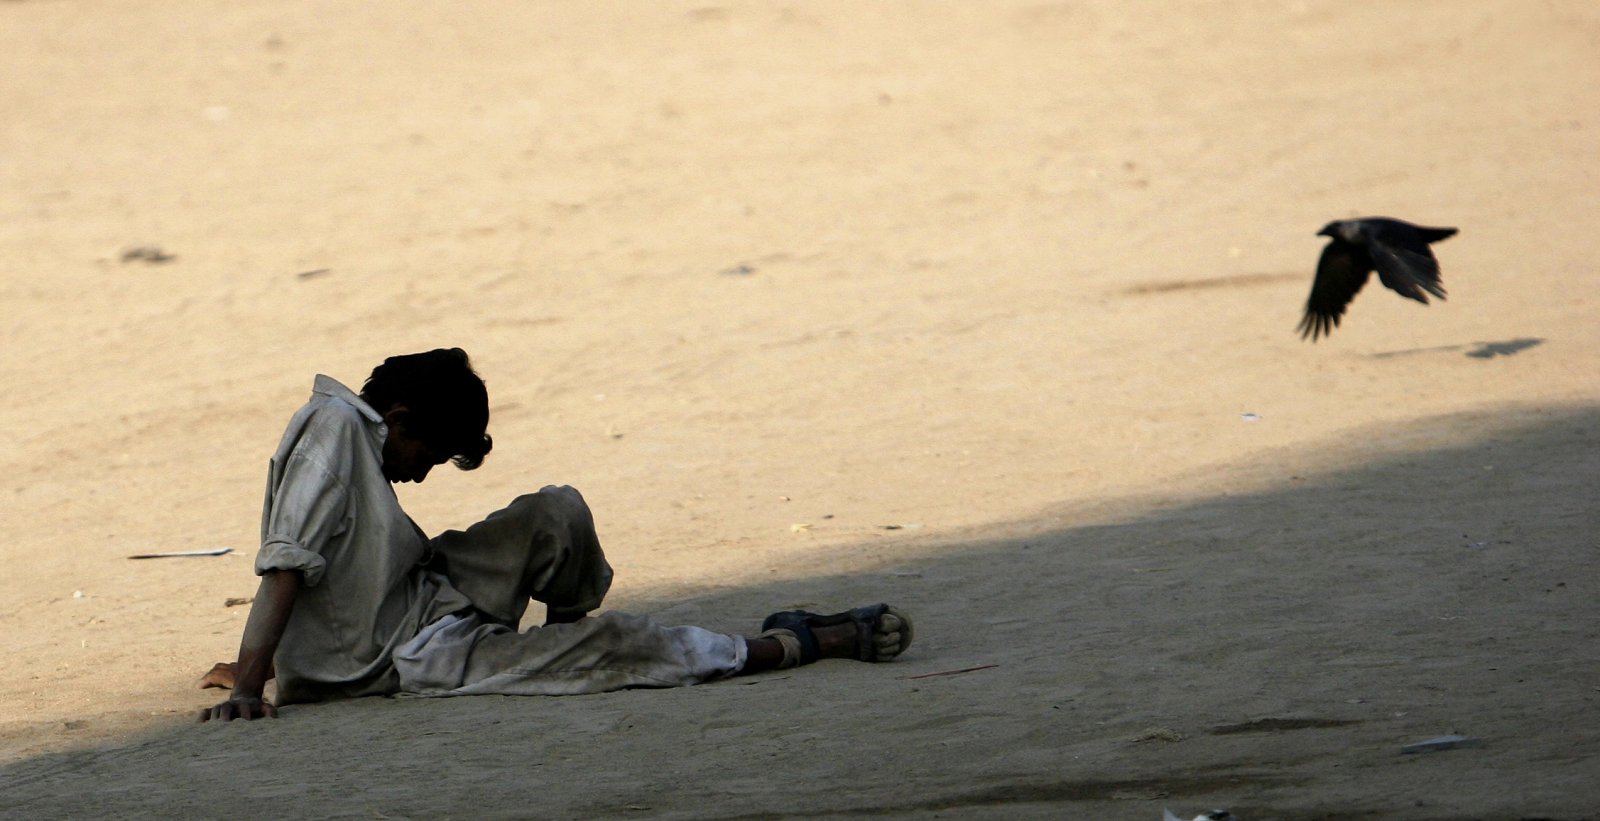 India toxic alcohol deaths